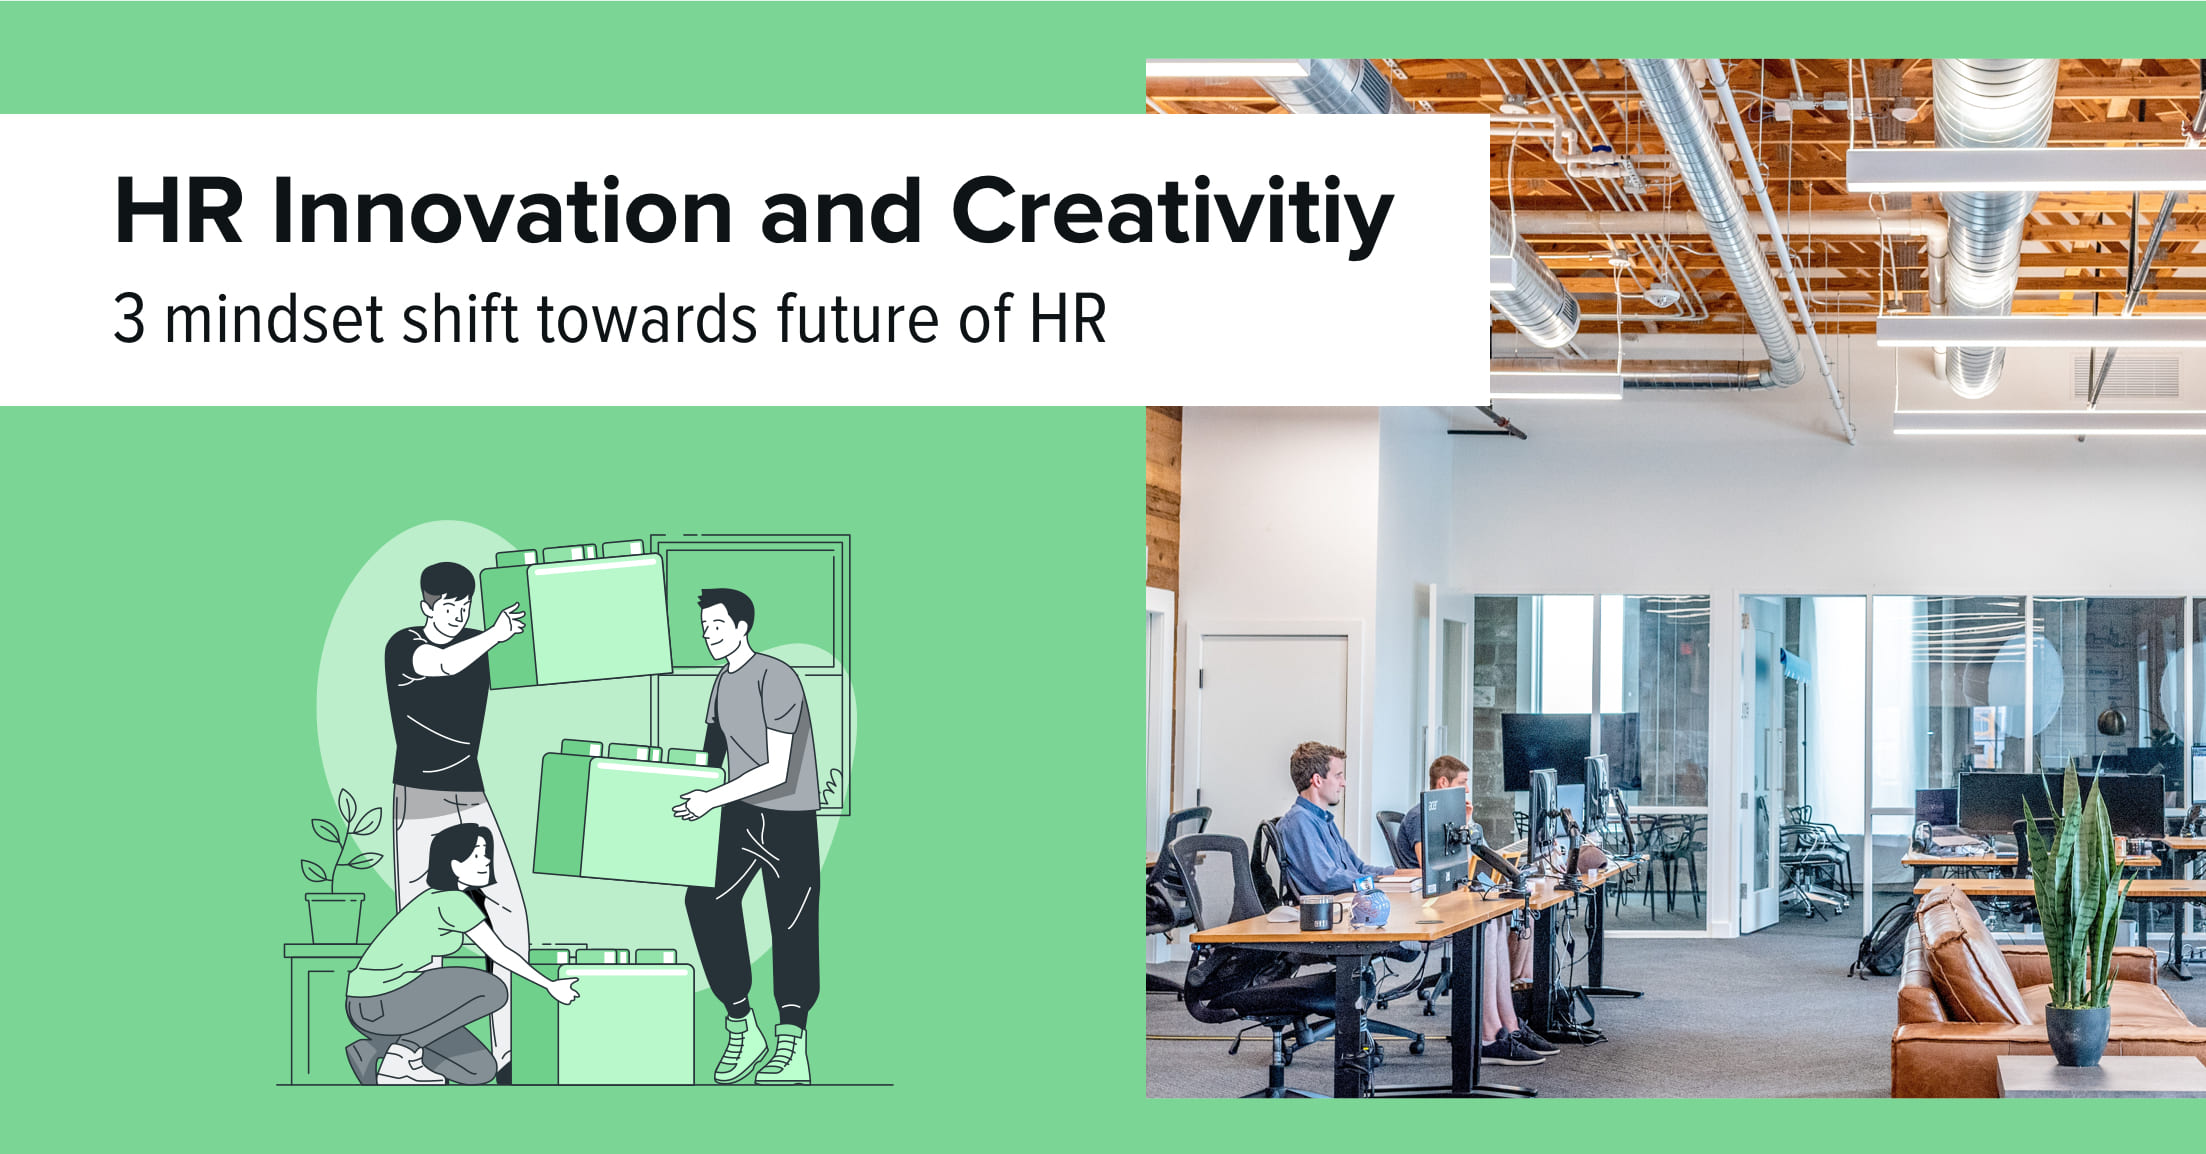 HR Innovation and creativity – 3 mindset shift towards the future of HR